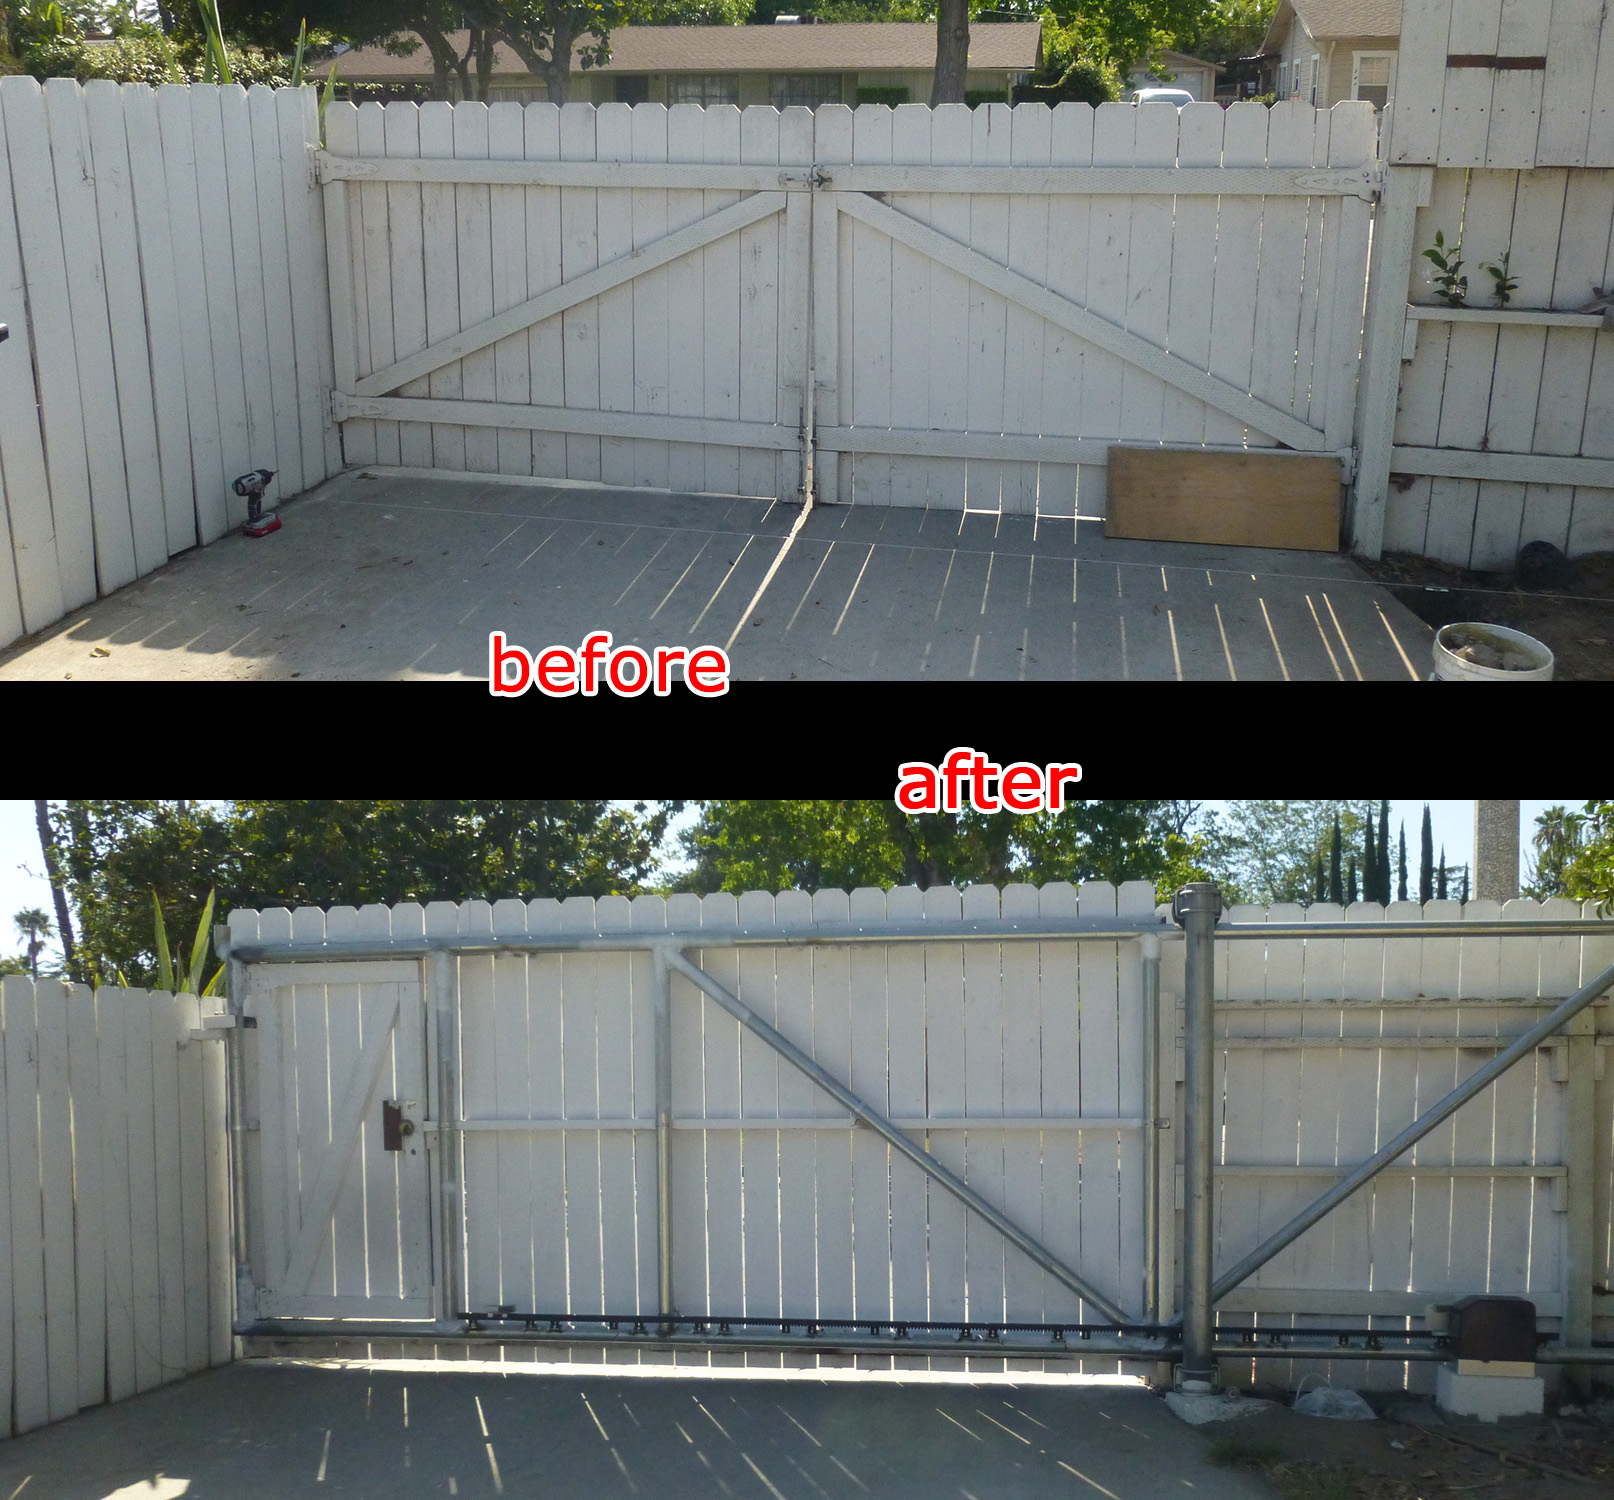 Diy Sliding Deck Gate Diy How To Build Your Own Cantilever Sliding Gate 1 Make A